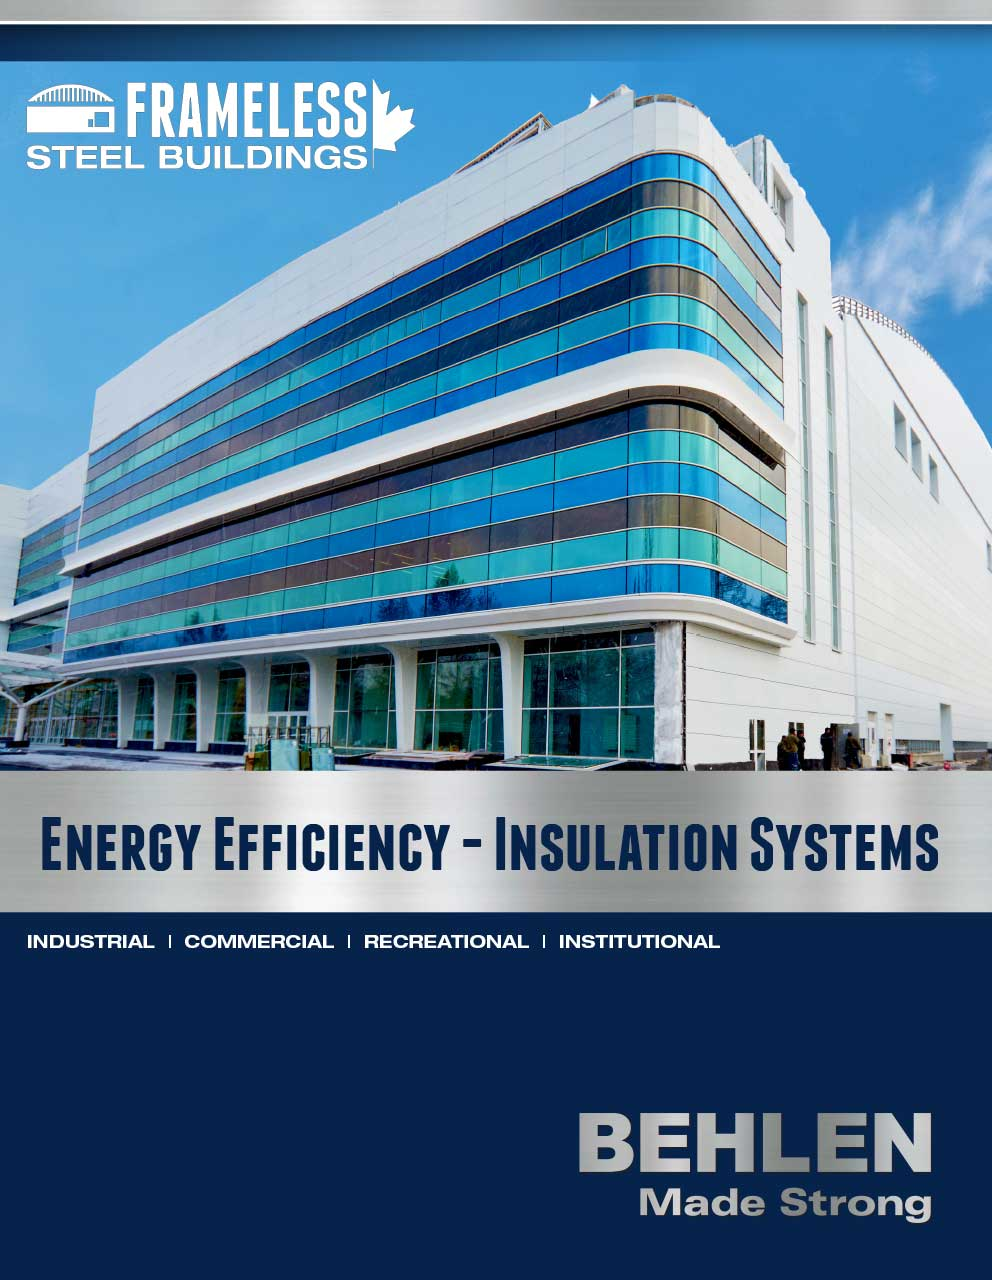 Behlen Industries - Frameless Insulation Systems